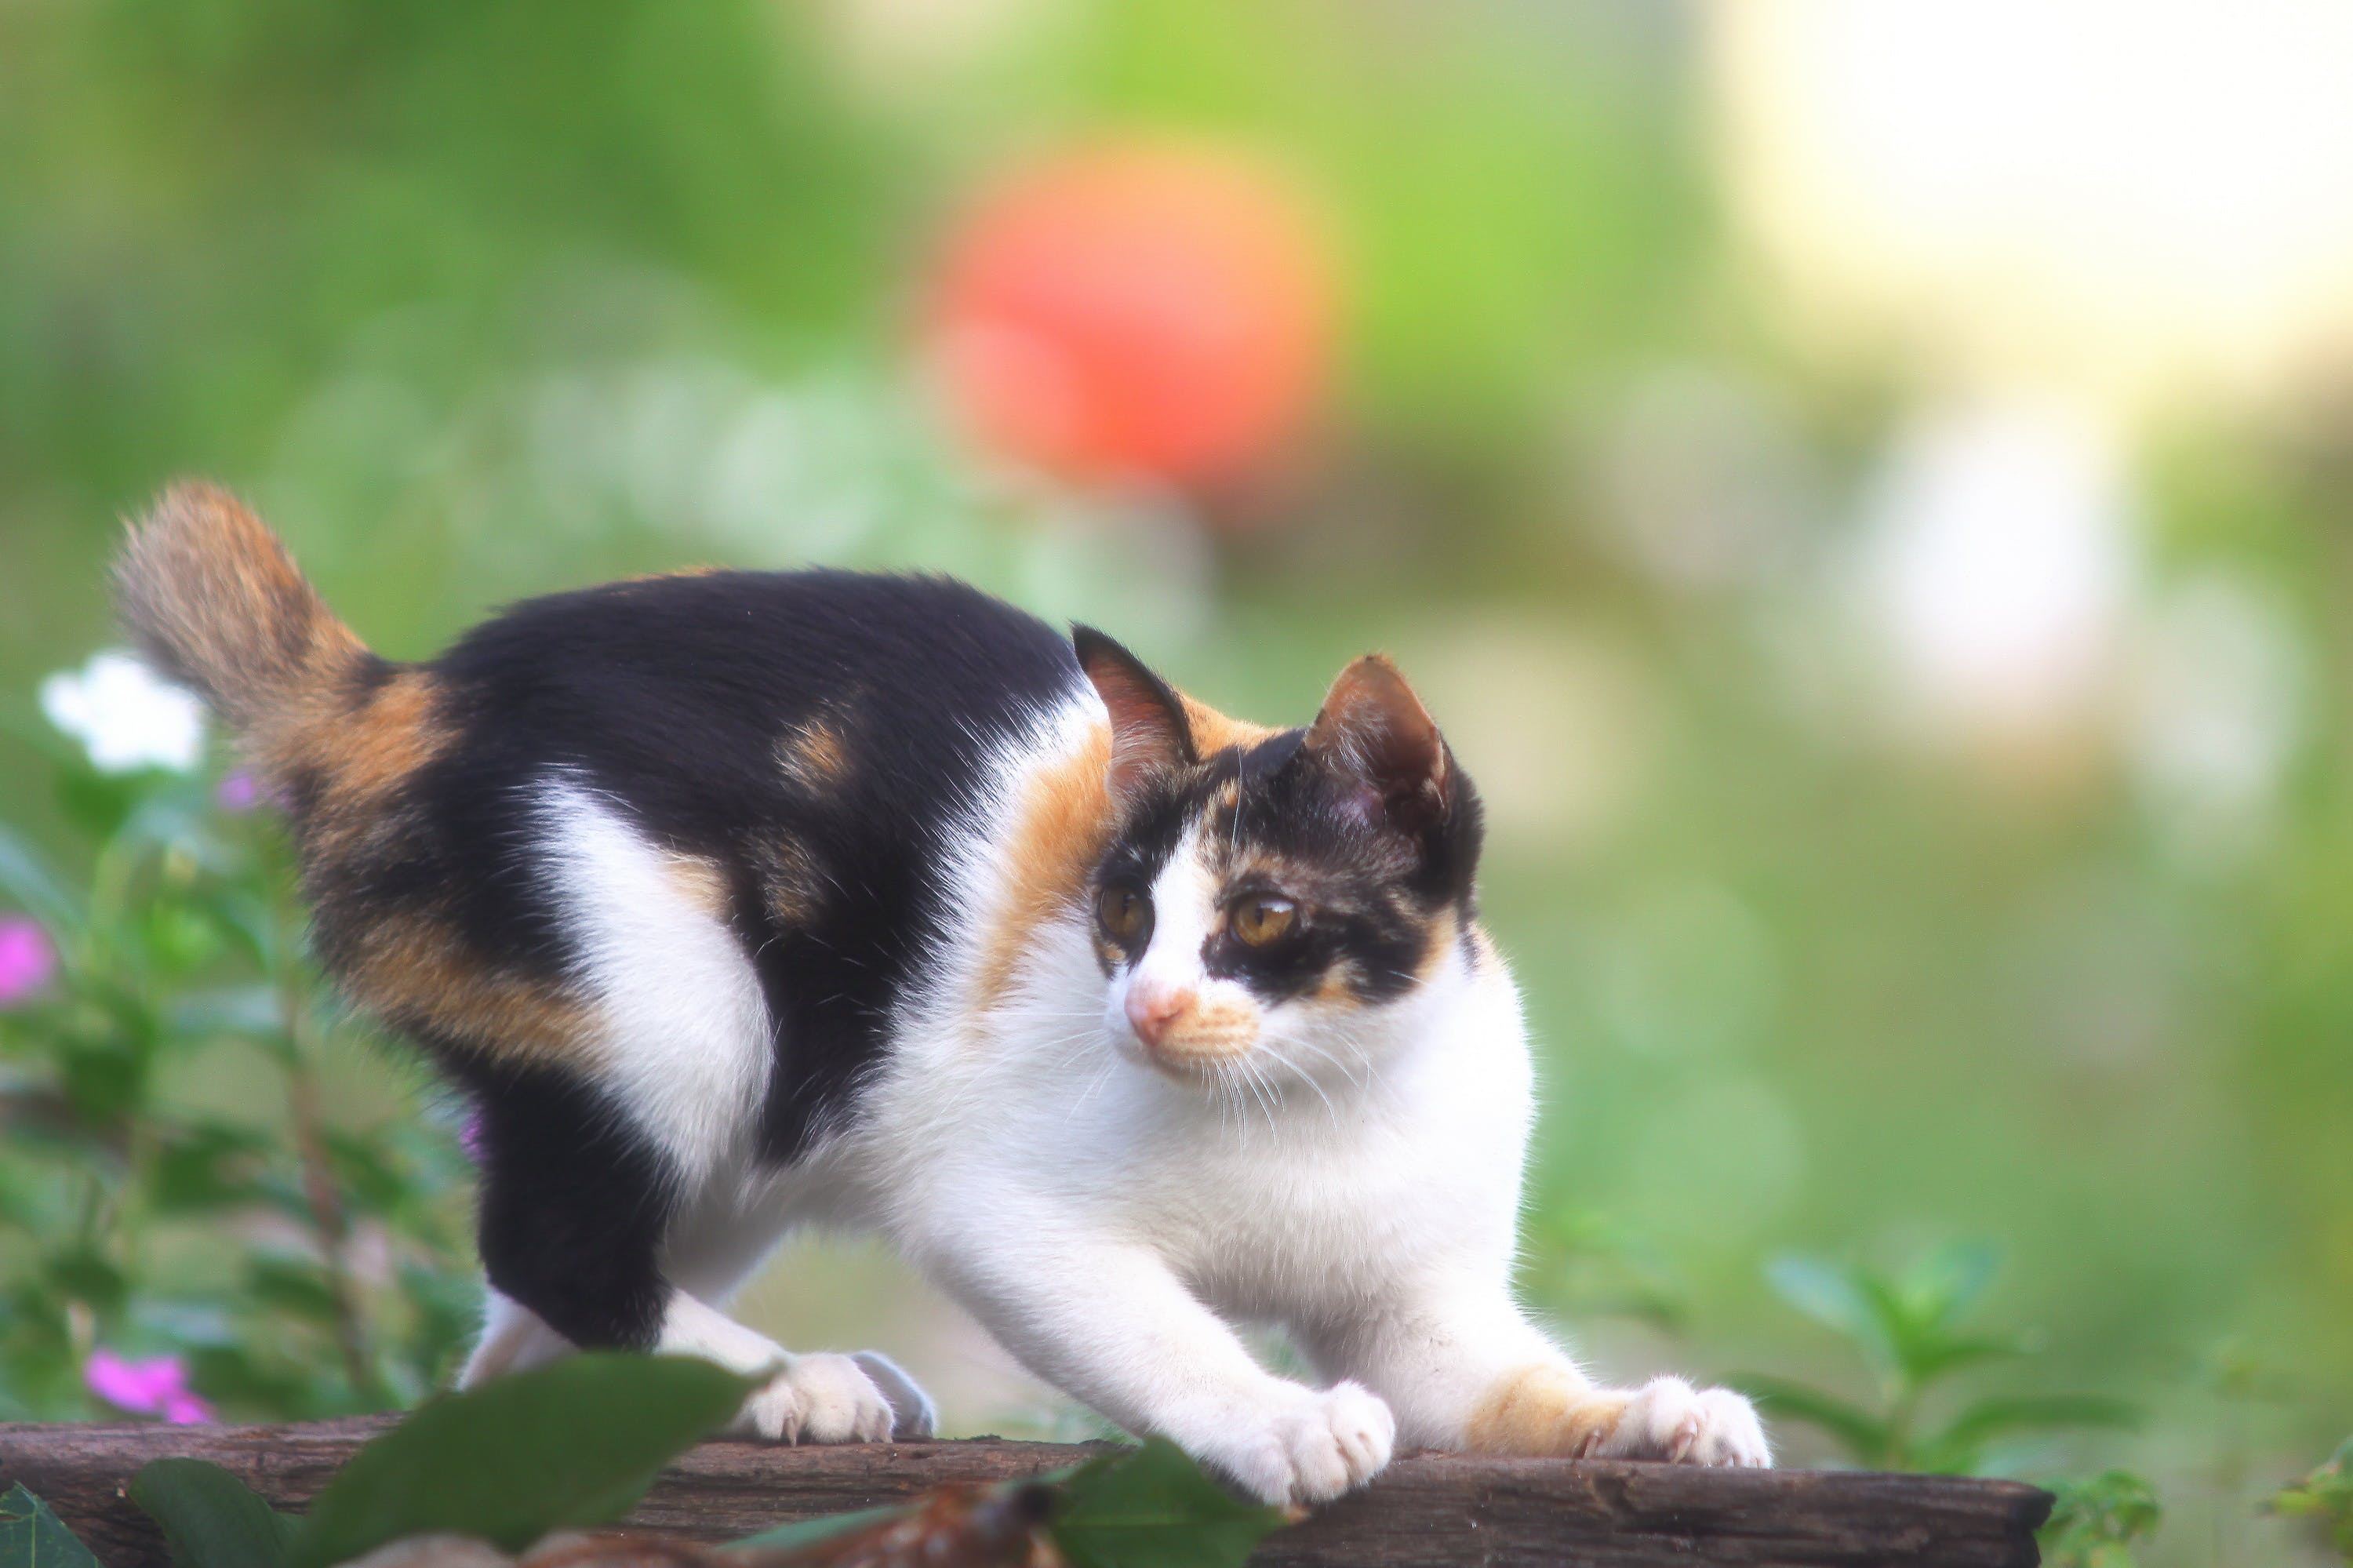 Selective Focus Photography of Calico Cat on Wood